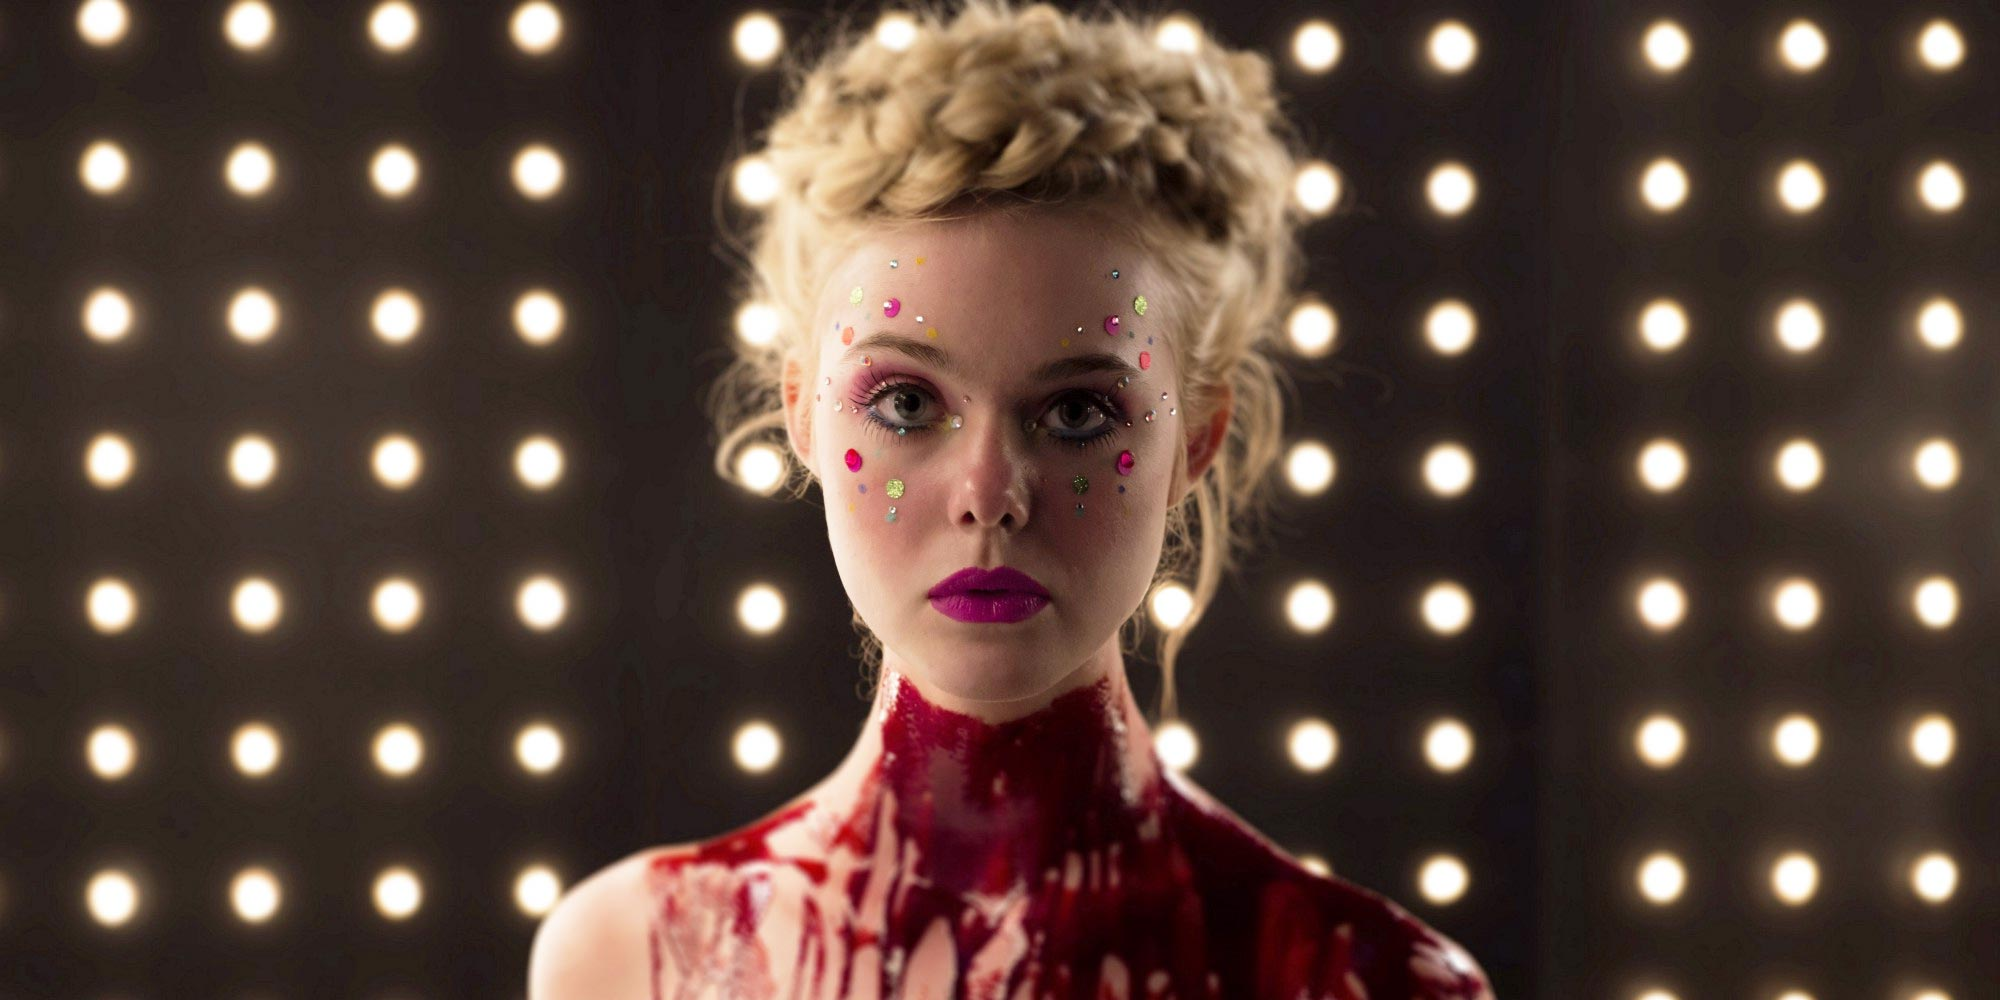 The Neon Demon - Header Image